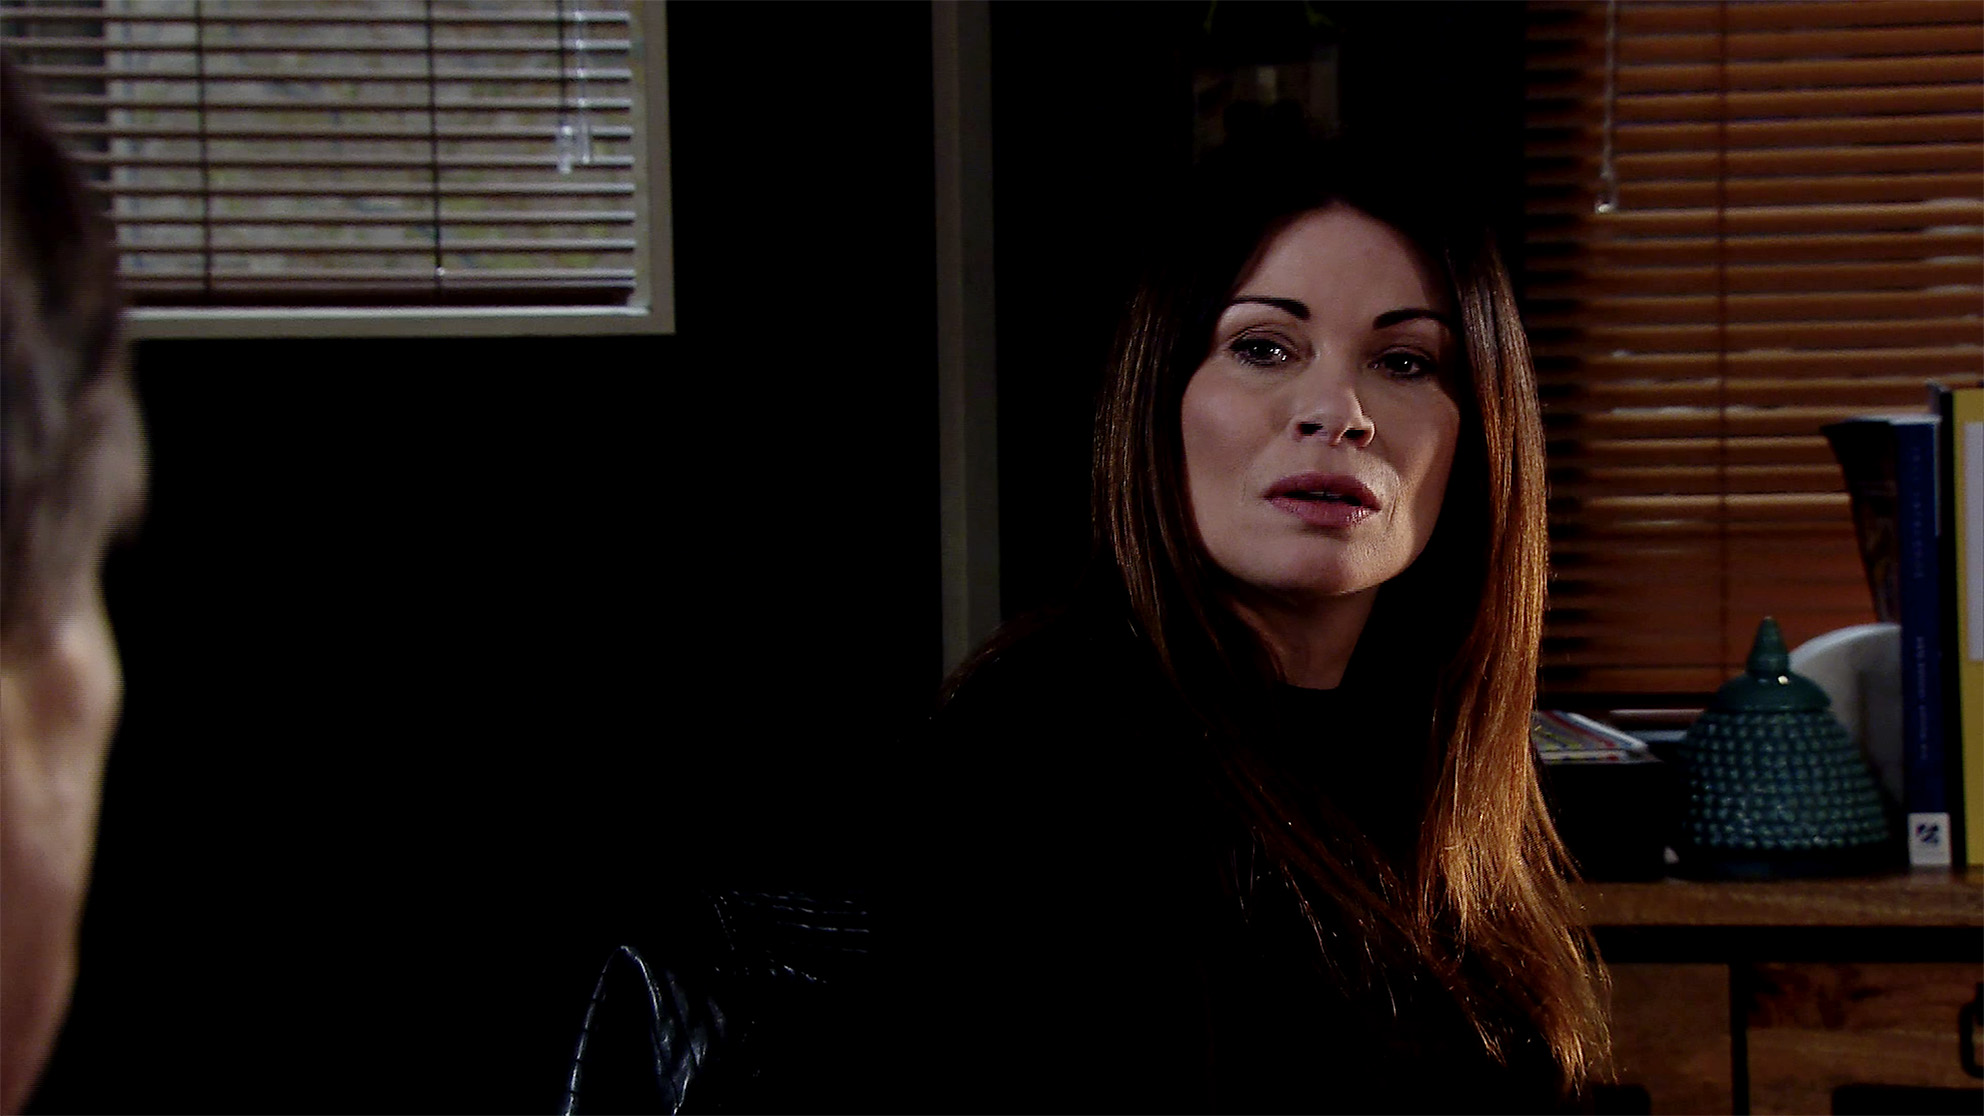 Coronation Street spoilers: Roy Cropper kicks Carla Connor out of his home